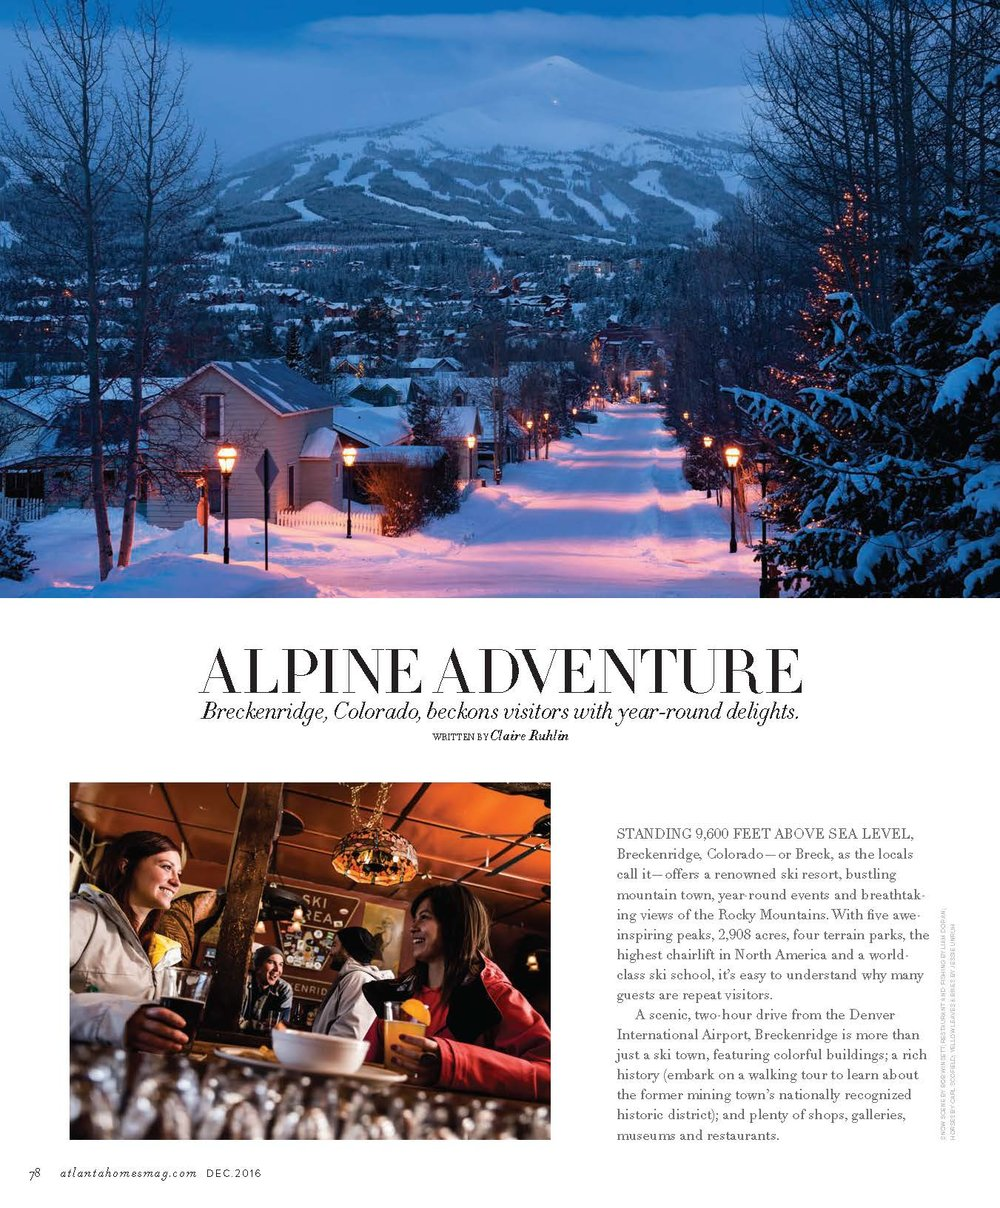 Breckenridge_Dec16_digitaledition_1_Page_1.jpg